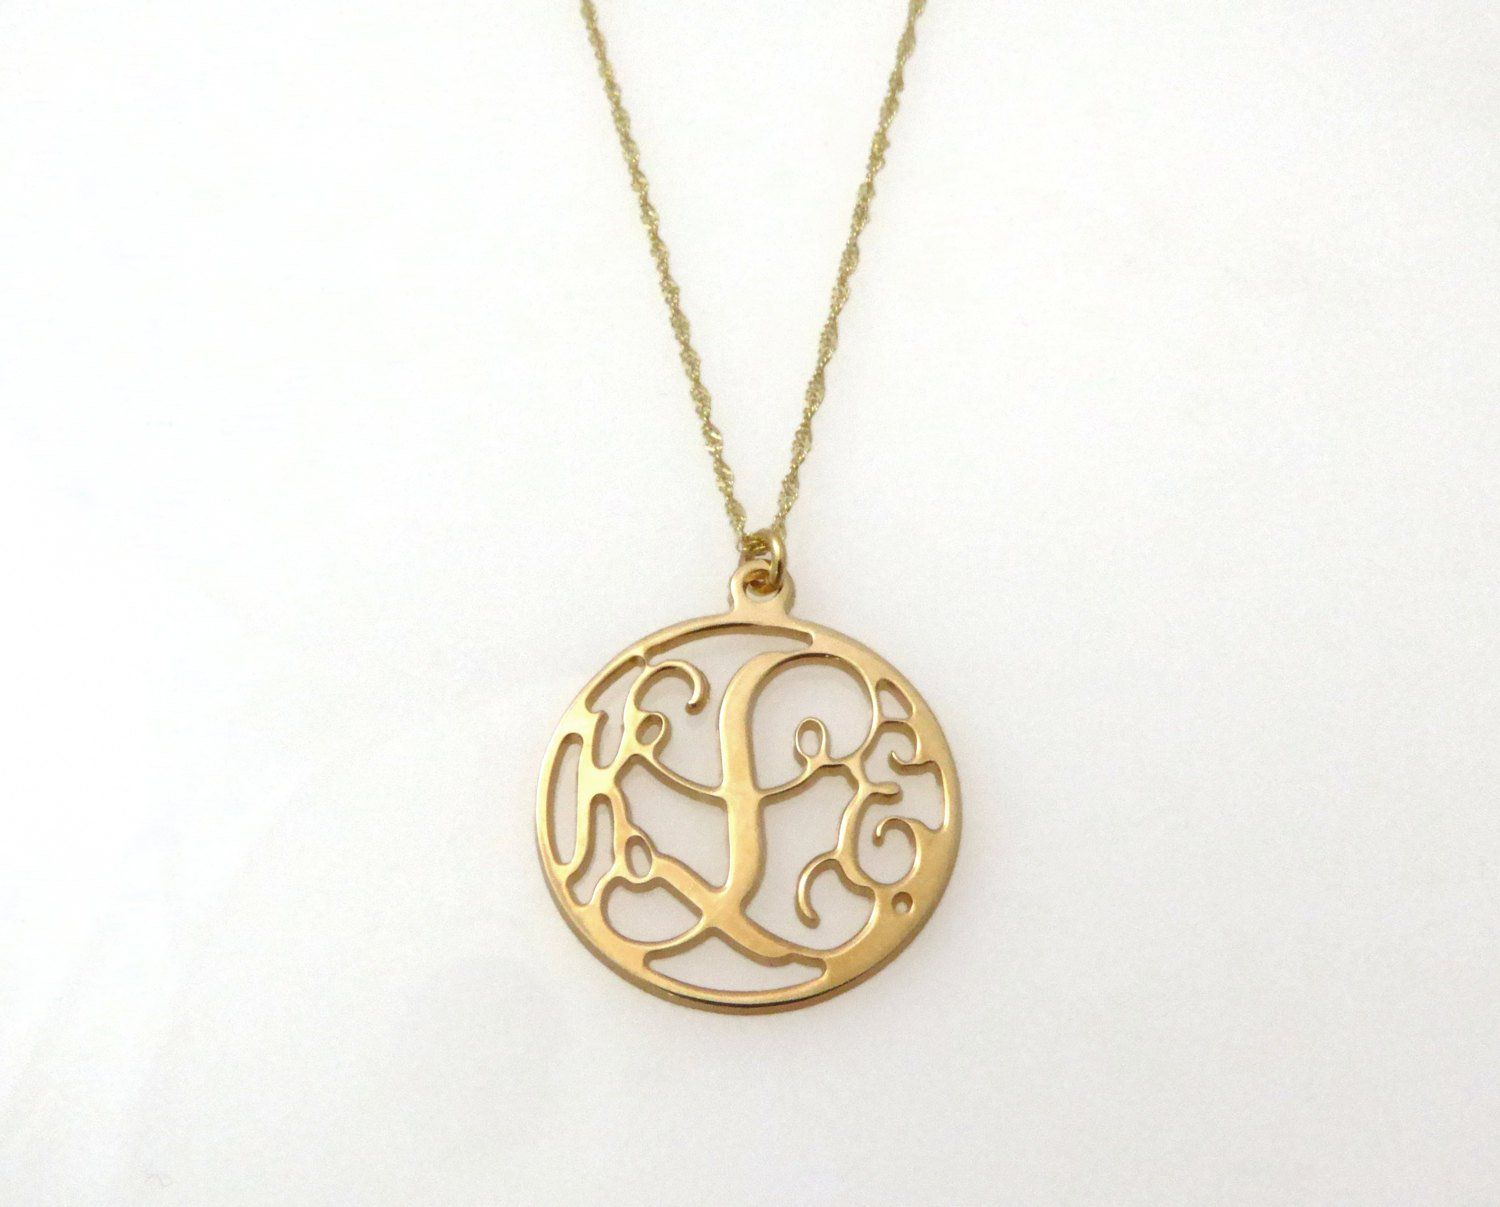 14k Gold Monogram Necklace Personalized Initial Necklace Personalized Pendent Gold Monogram Necklace Initial Jewelry Monogram Necklace Initial Jewelry Initial Necklace